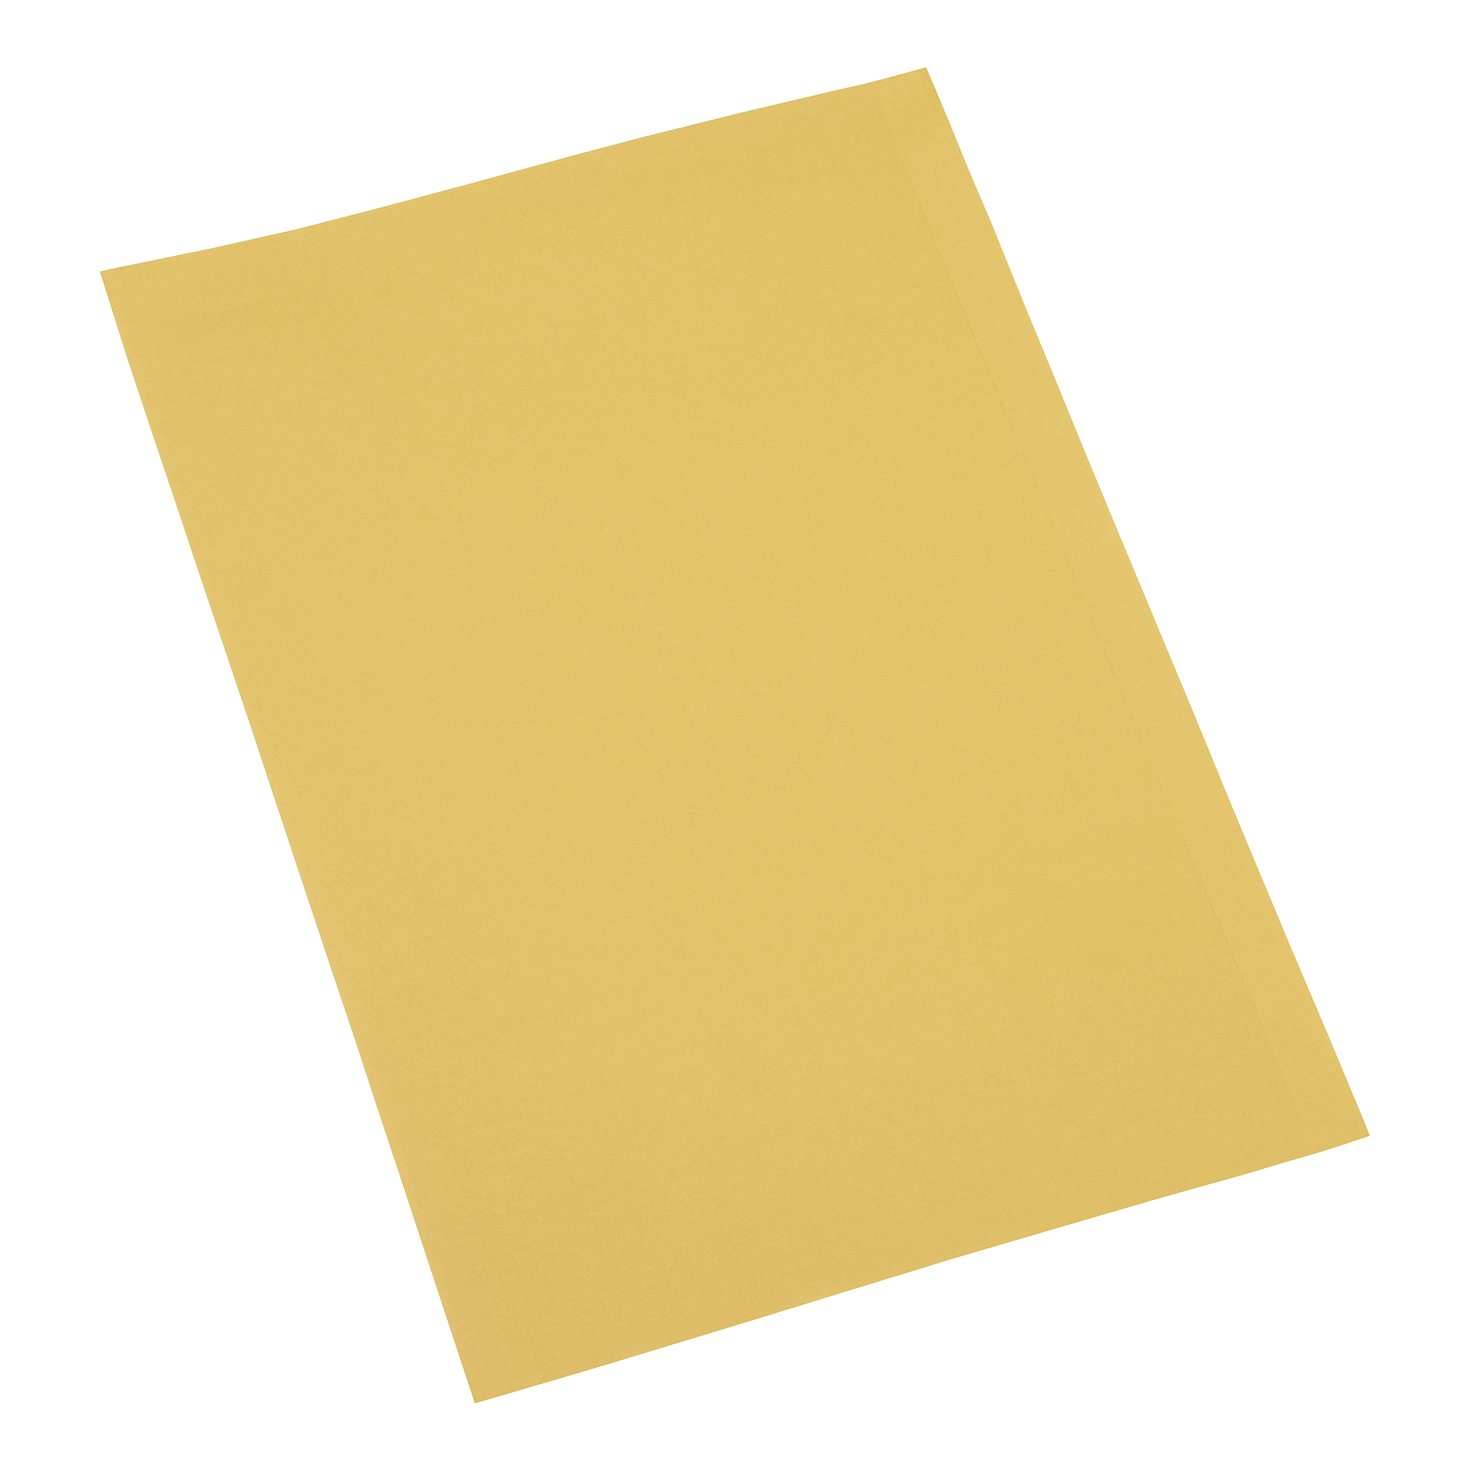 5 Star Office Square Cut Folder Recycled Pre-punched 250gsm Foolscap Yellow [Pack 100]